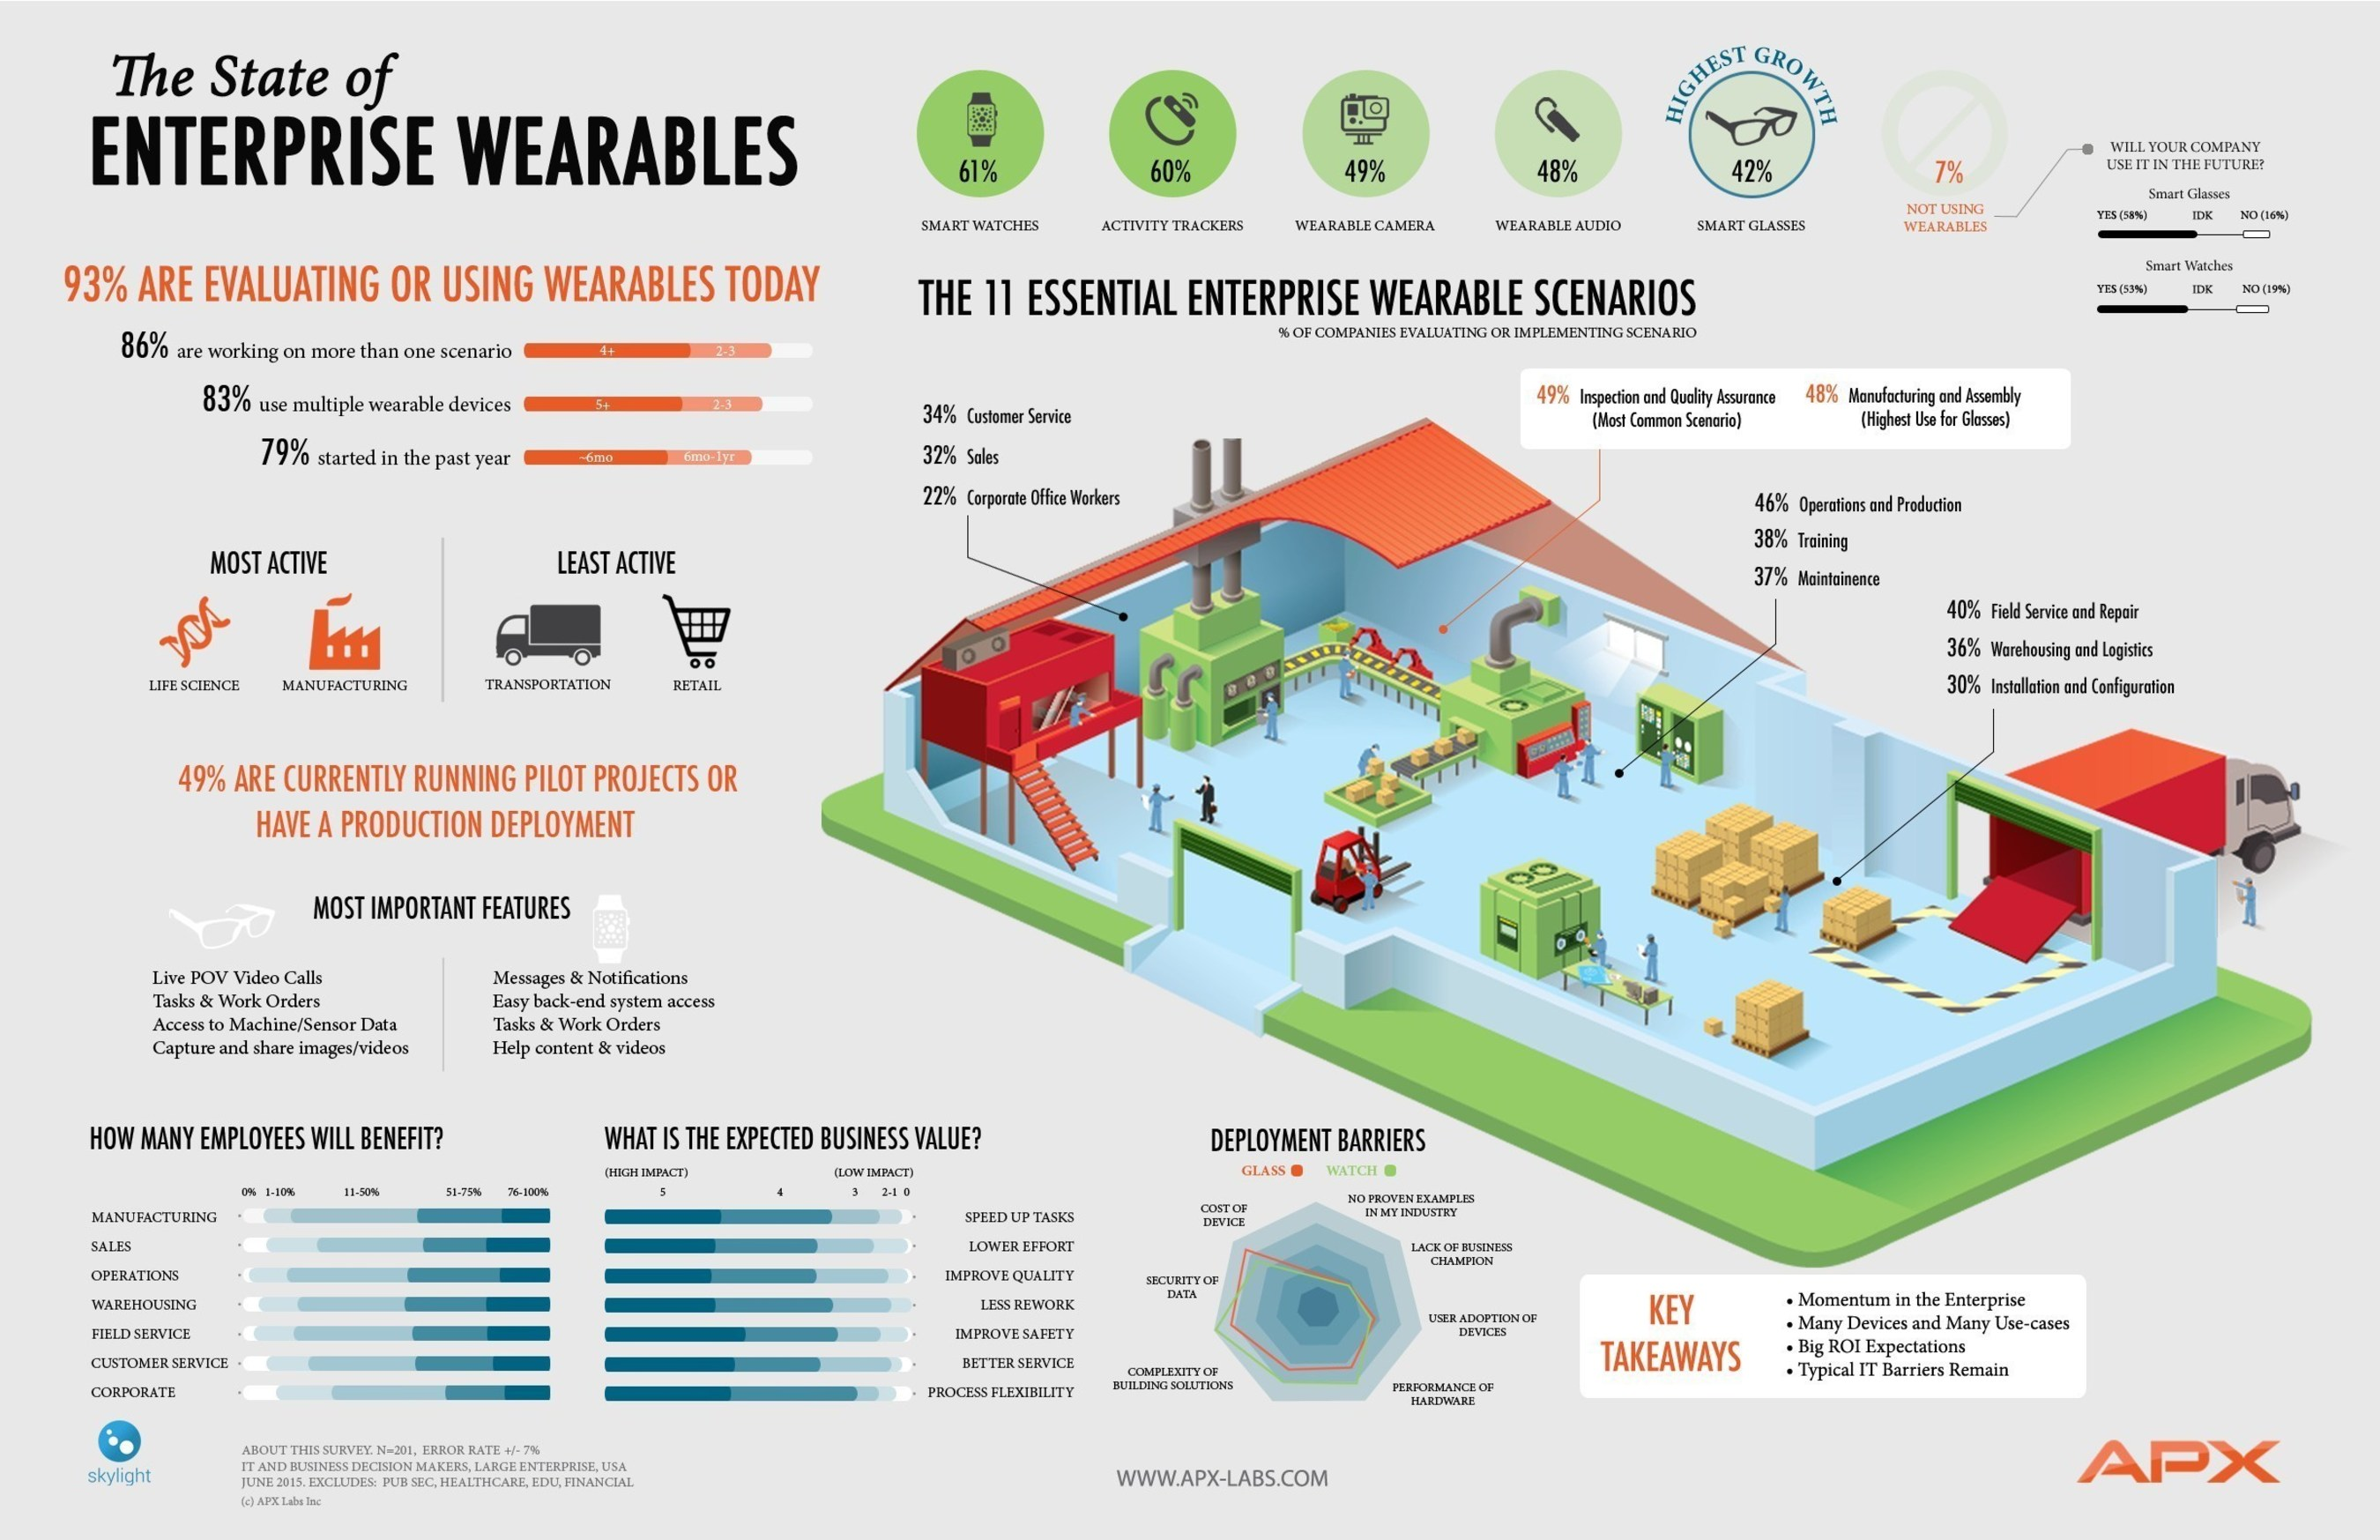 New Research: APX Labs Unveils The State of Enterprise Wearable Adoption